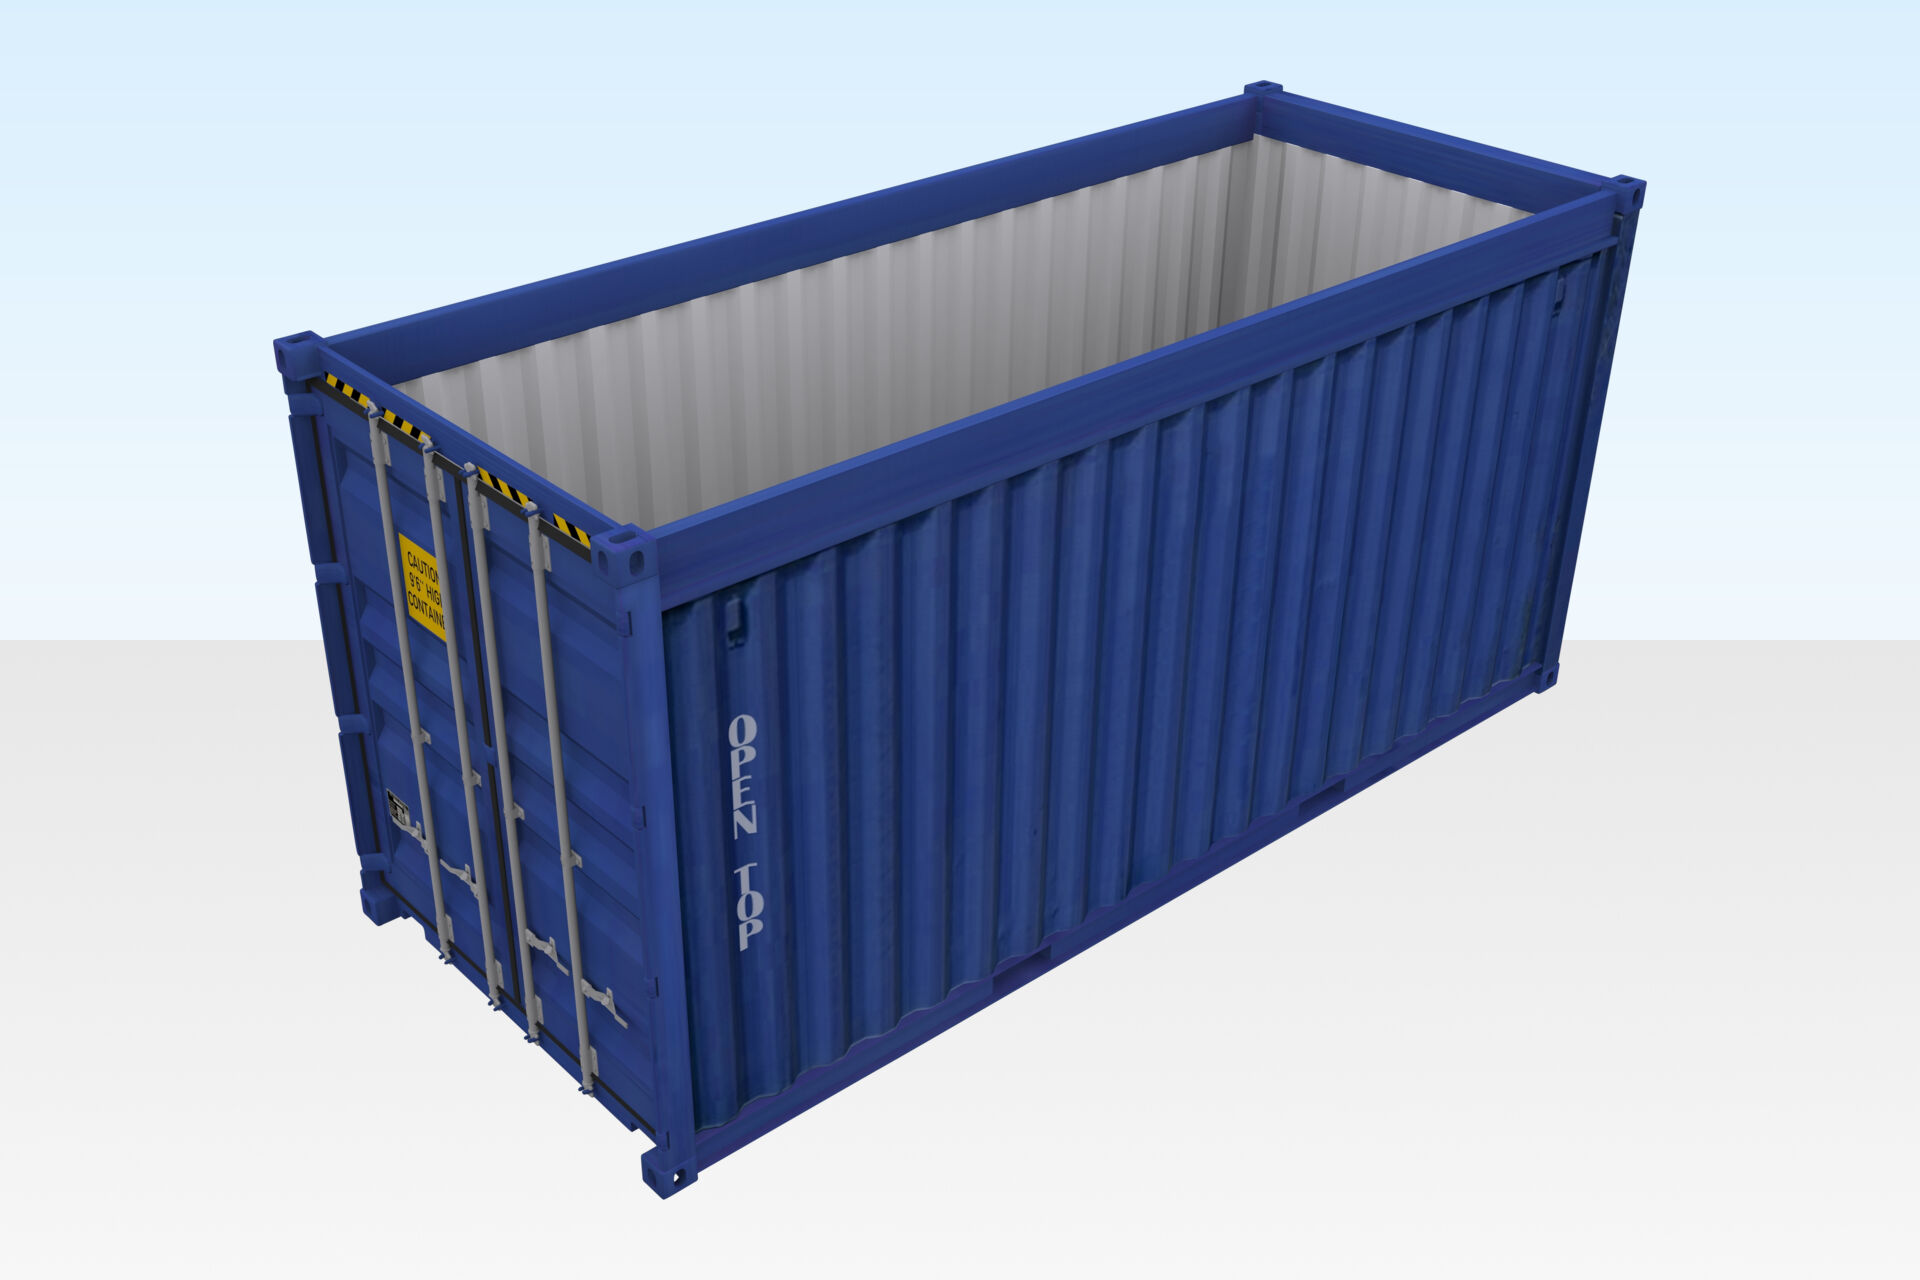 40ft x 8ft Used open top shipping container for sale : Open